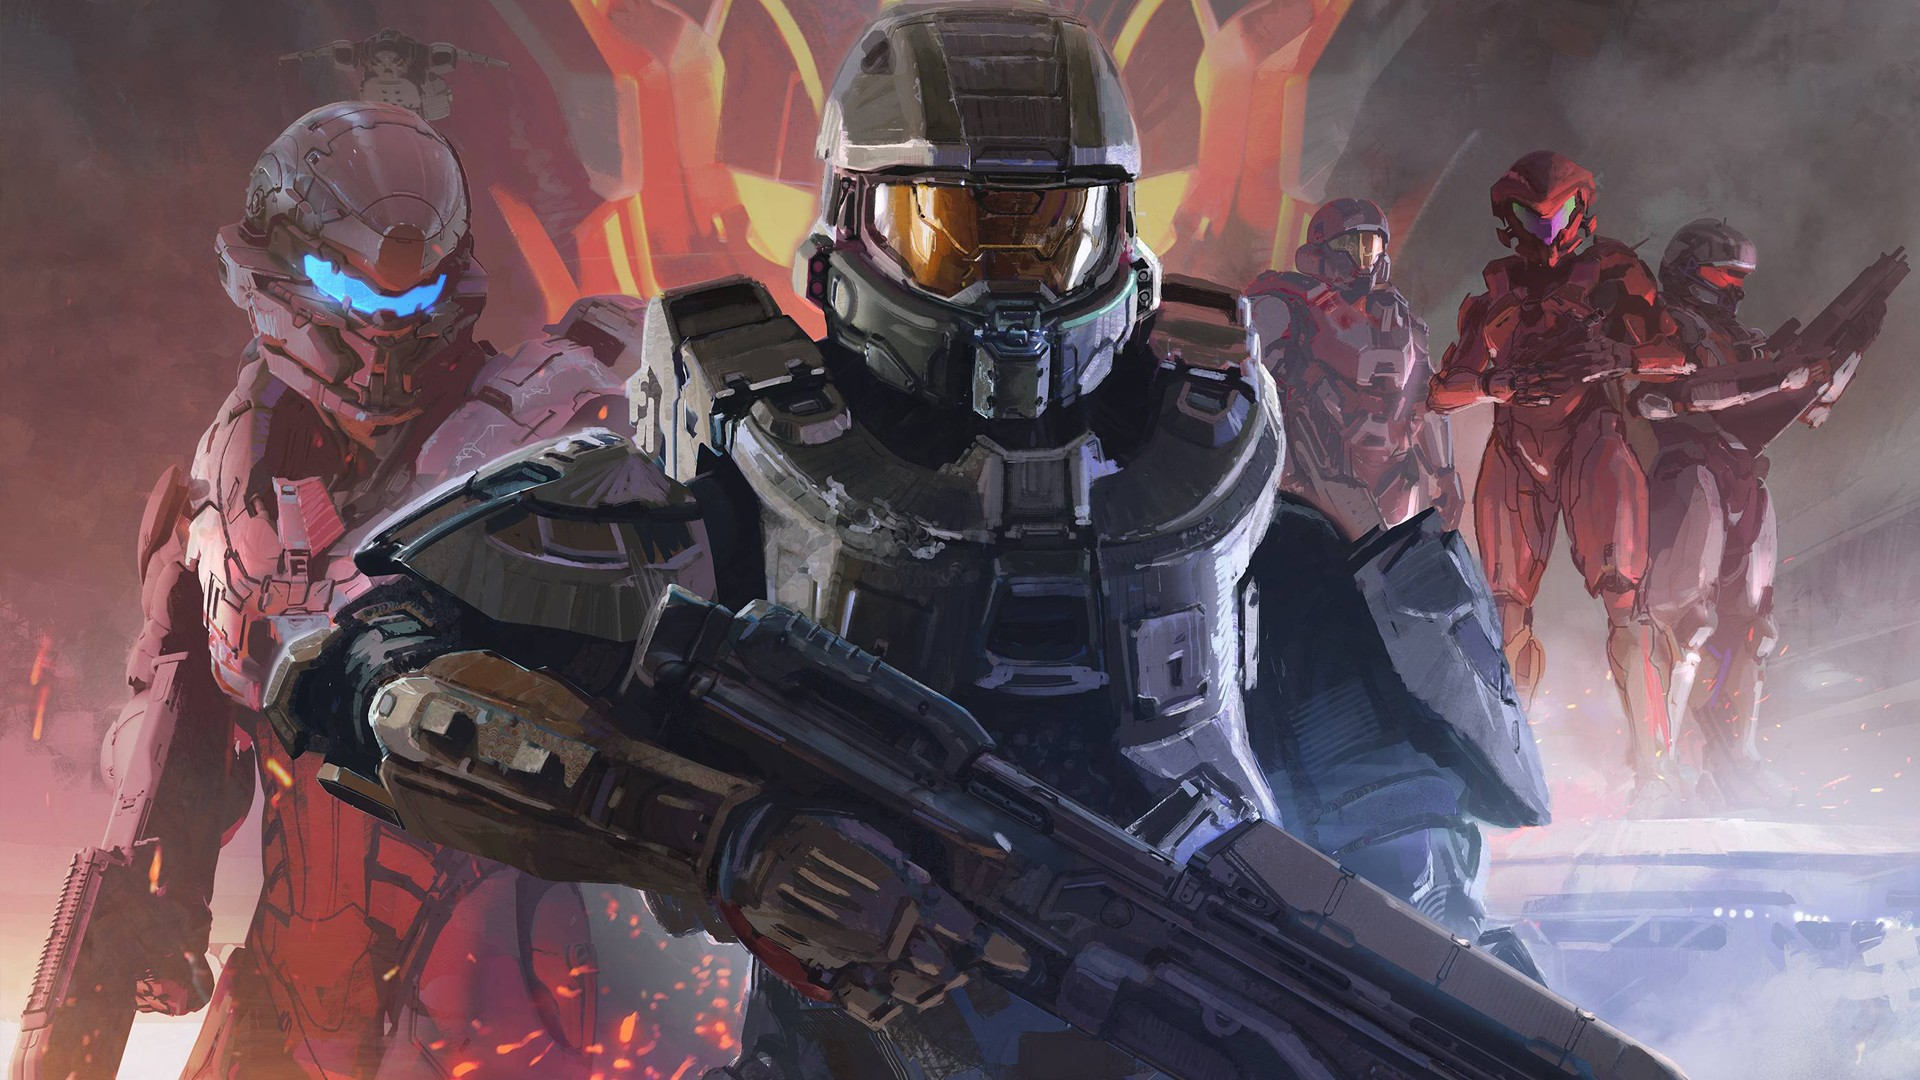 Halo Reach 3d Wallpaper Pc Halo 5 Guardians Full Hd Wallpaper And Background Image